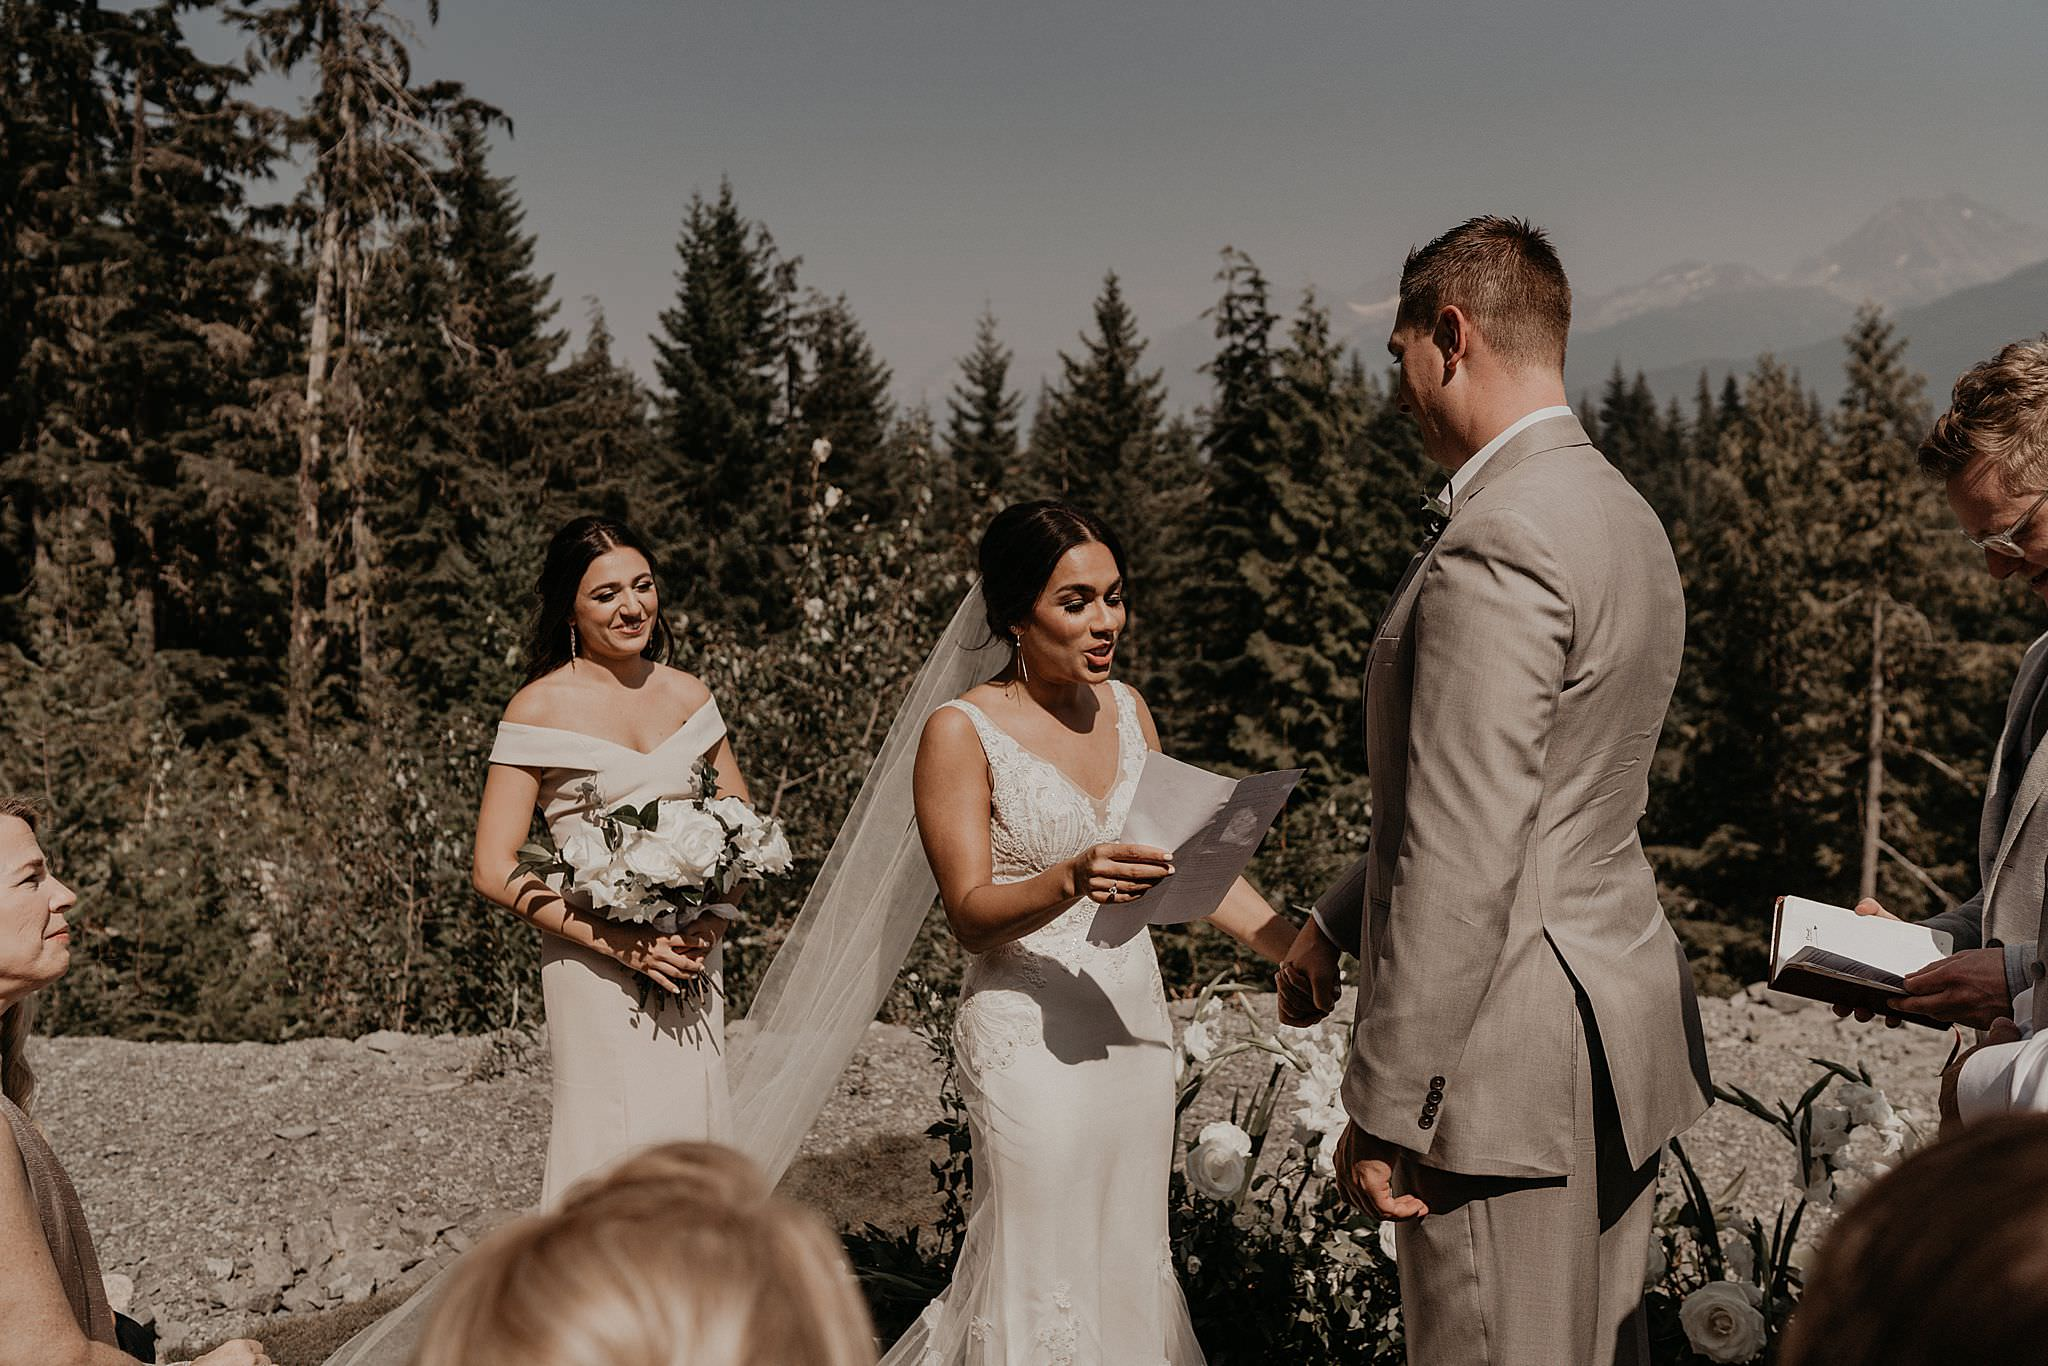 whistler-mountain-helicopter-elopement-wedding_0057.jpg